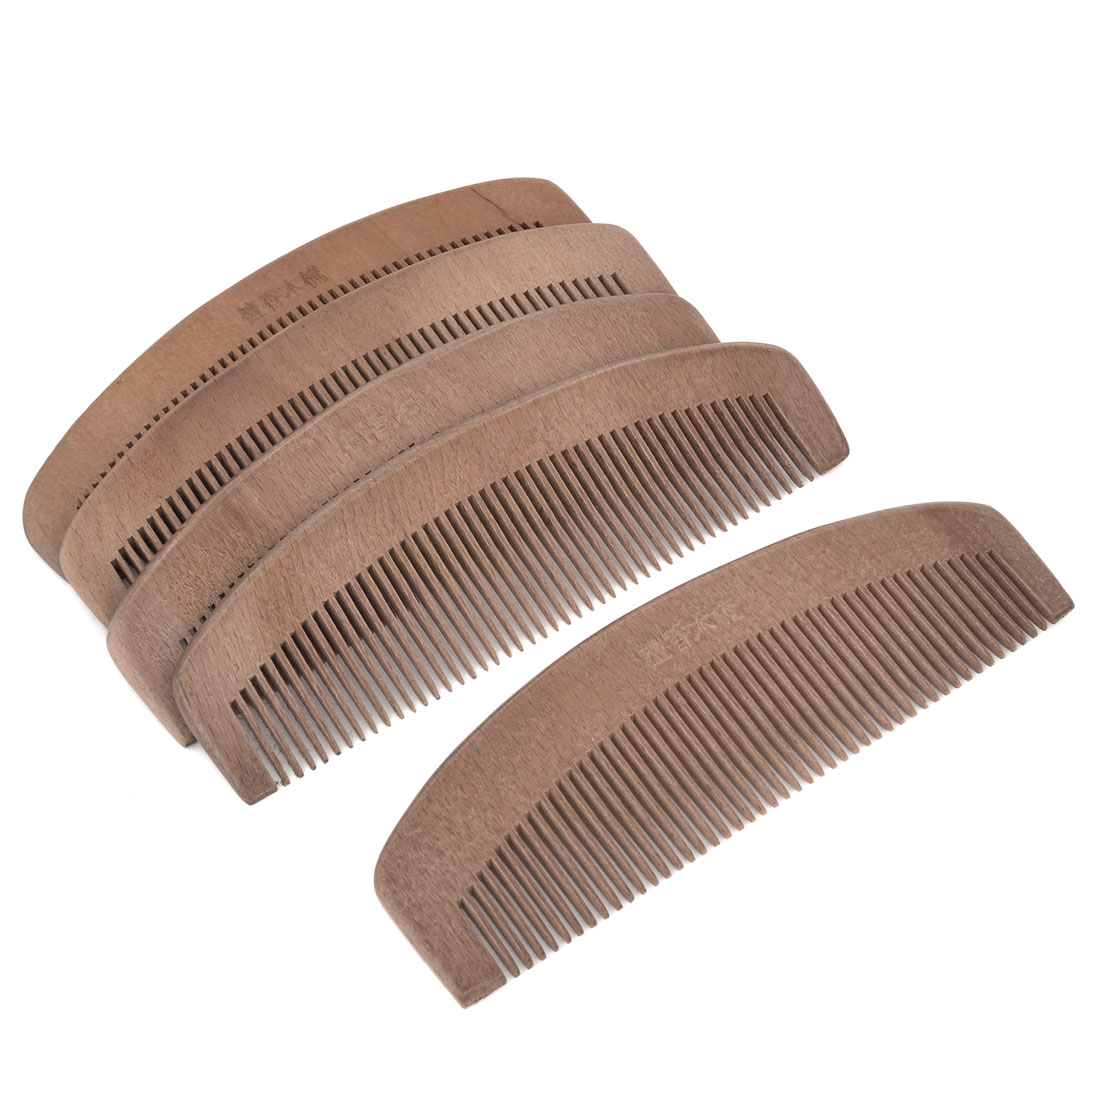 5 Pcs Portable Hair Care Toothed Massage Peach Wooden Comb Dark Brown